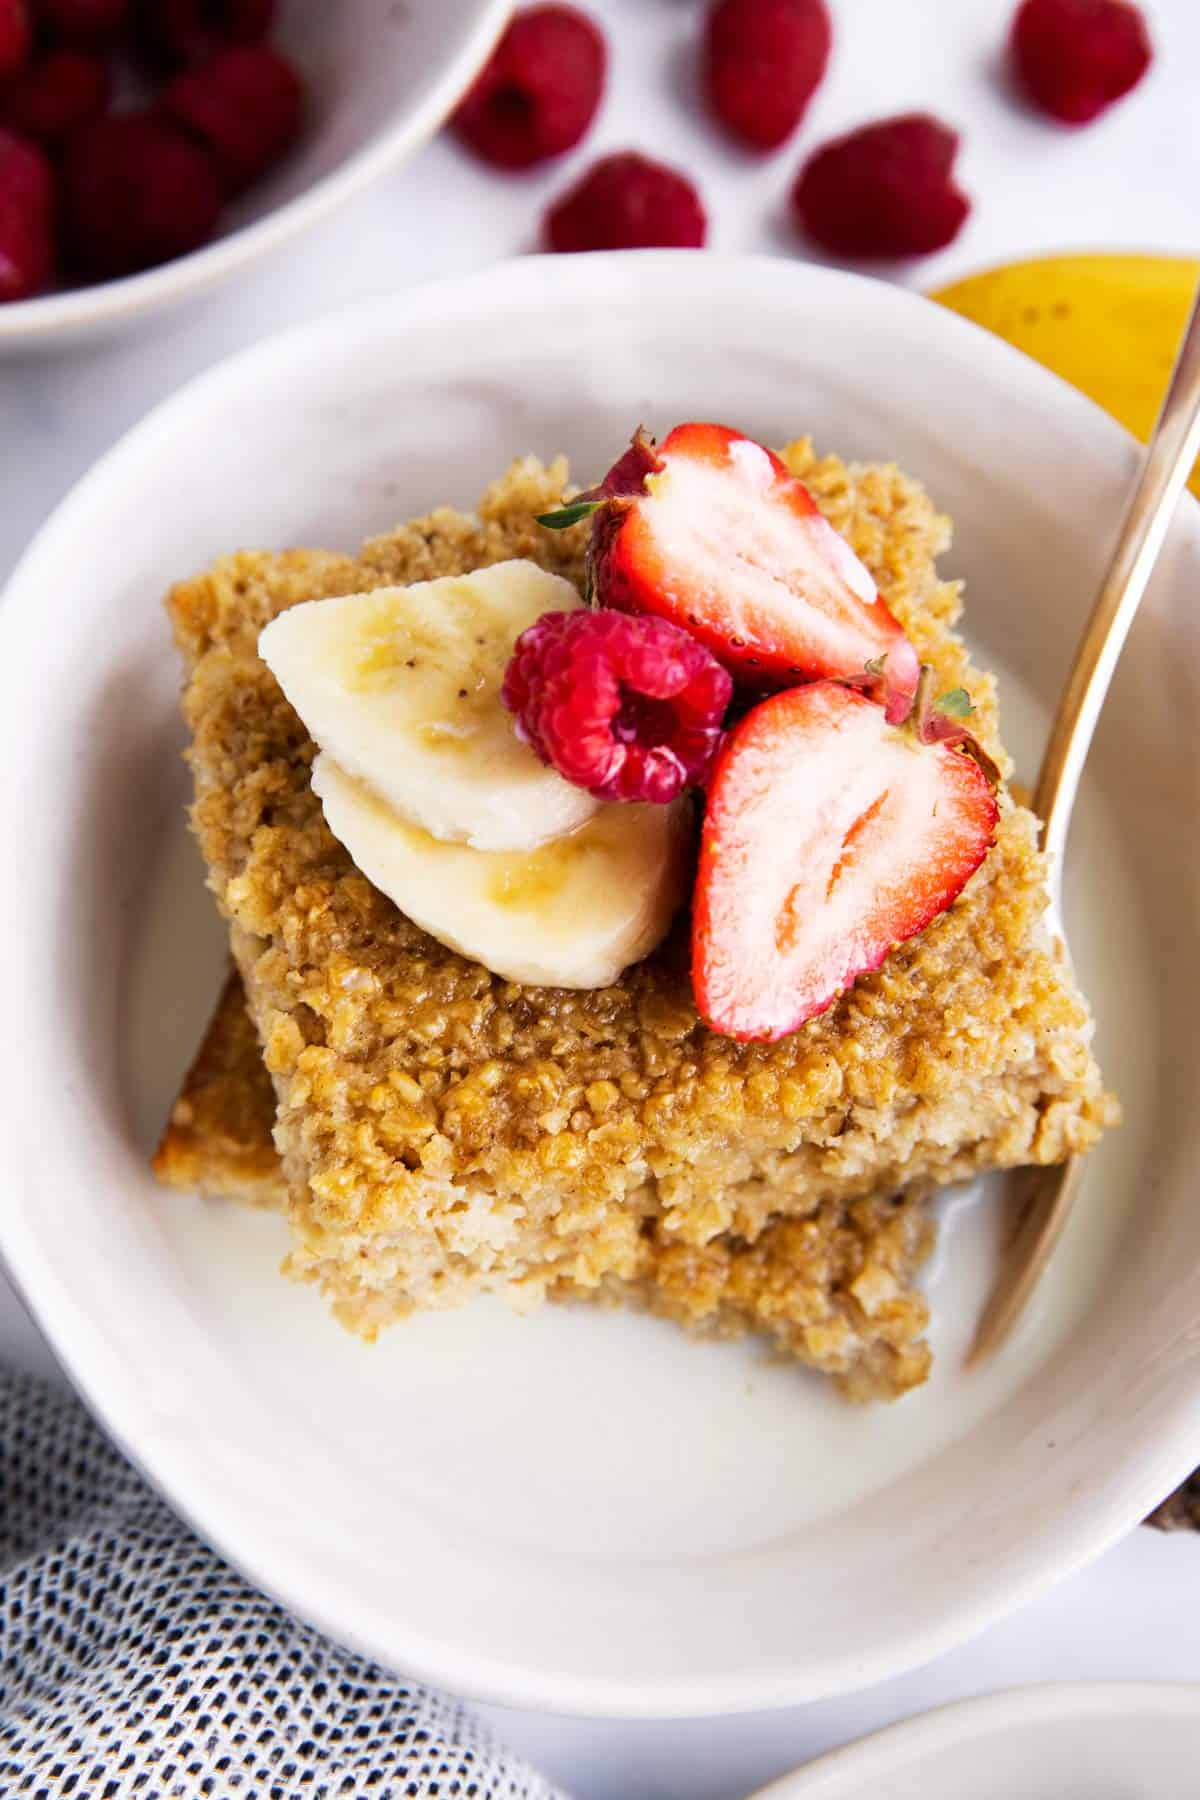 baked oatmeal and fruit in a bowl with milk